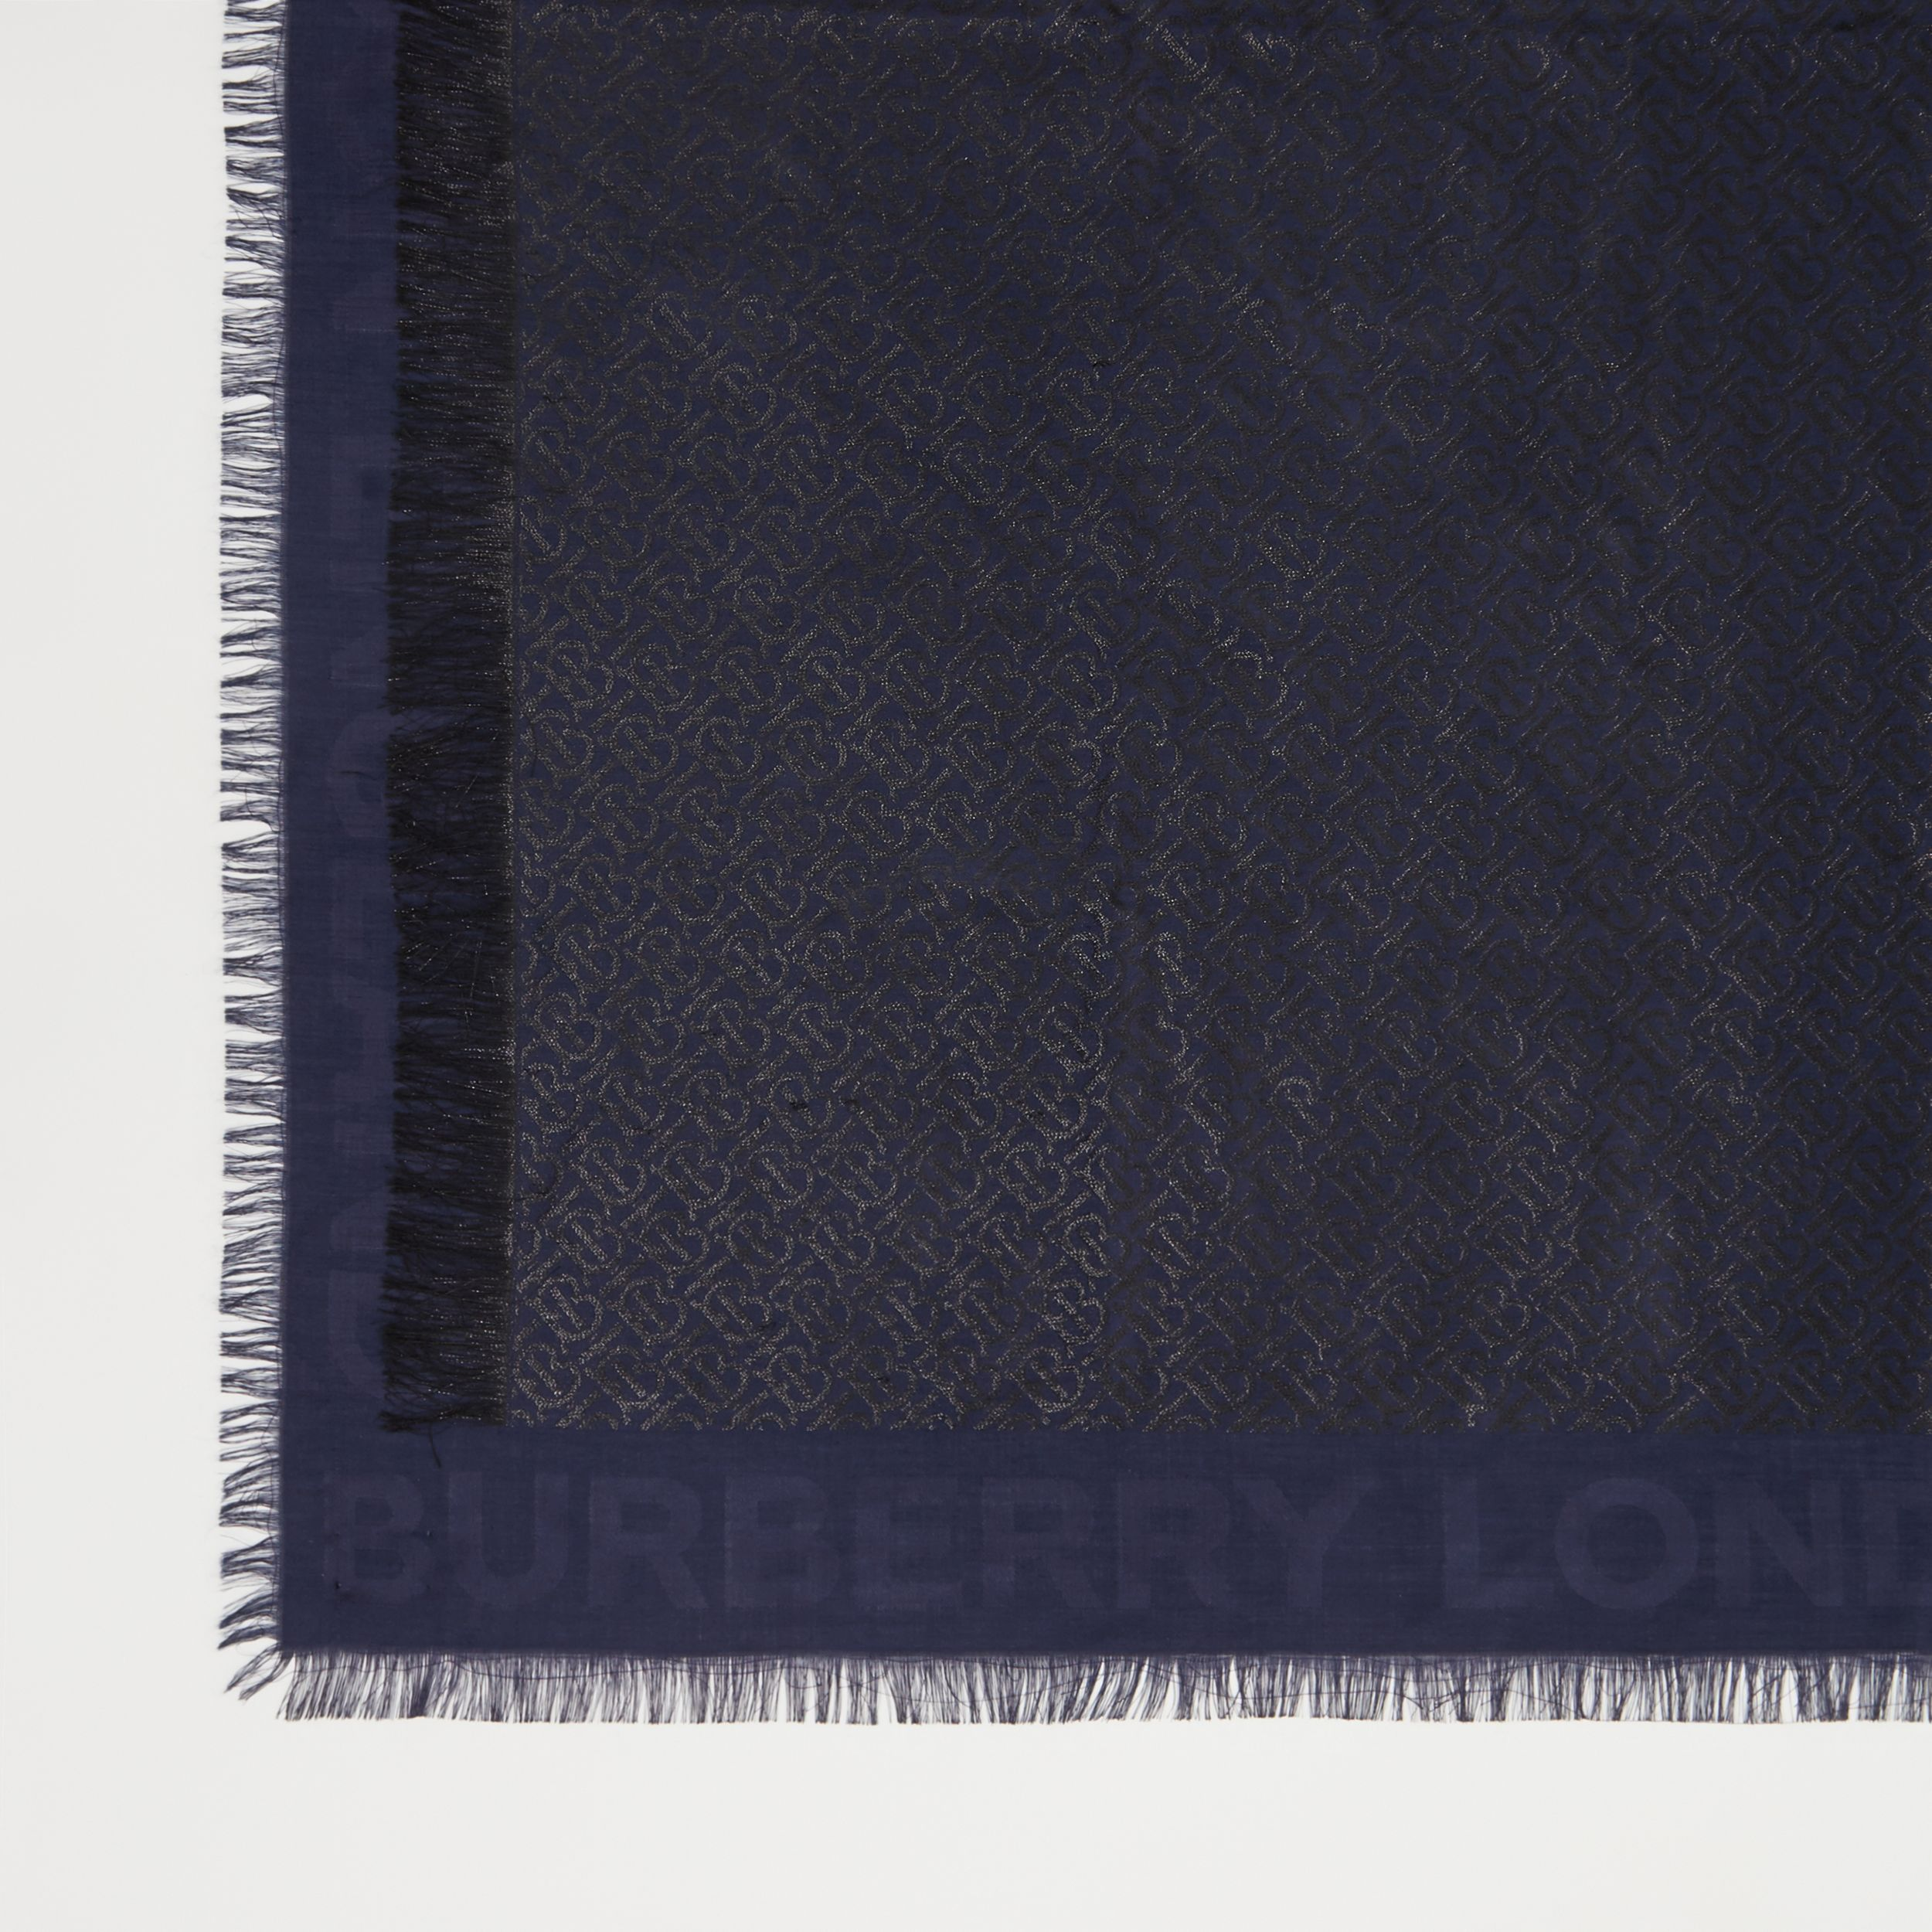 Metallic Monogram Silk Blend Large Square Scarf in Navy/black | Burberry United Kingdom - 2